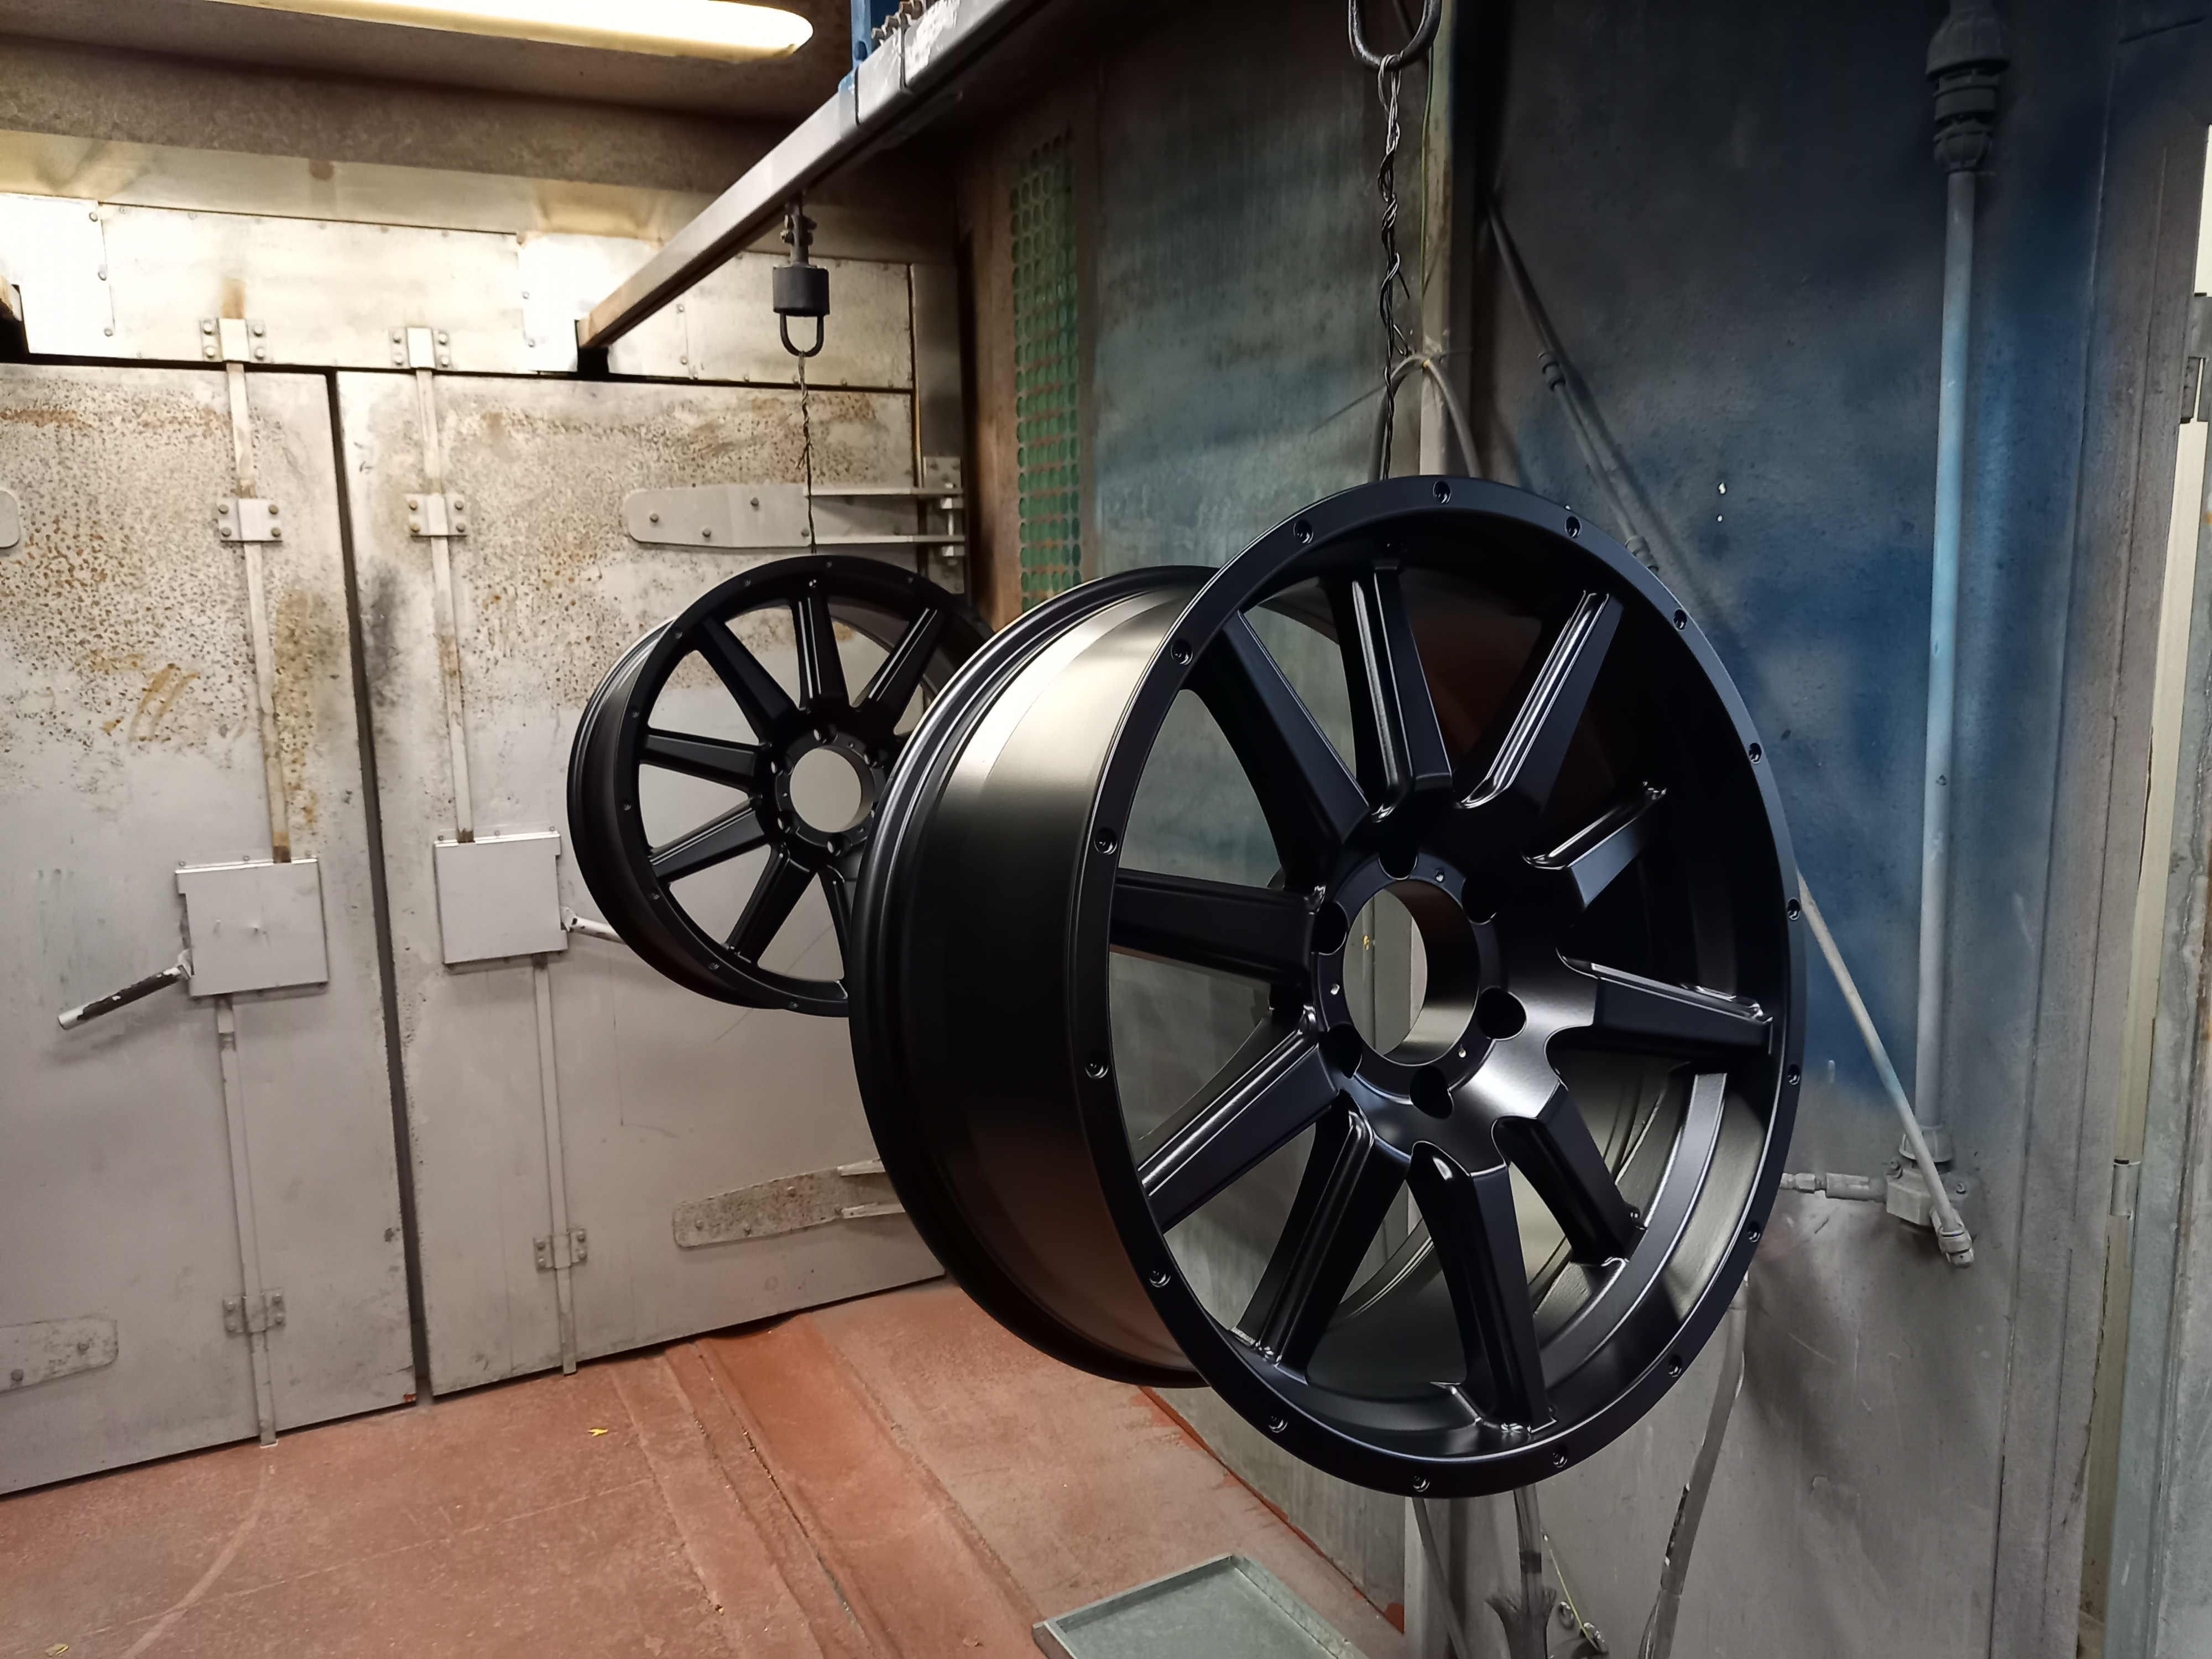 At Mario's Wheel Repairs, we don't just paint the face of the wheel - we also do the powder coating, both the internal and the external part, just like the original factory process.